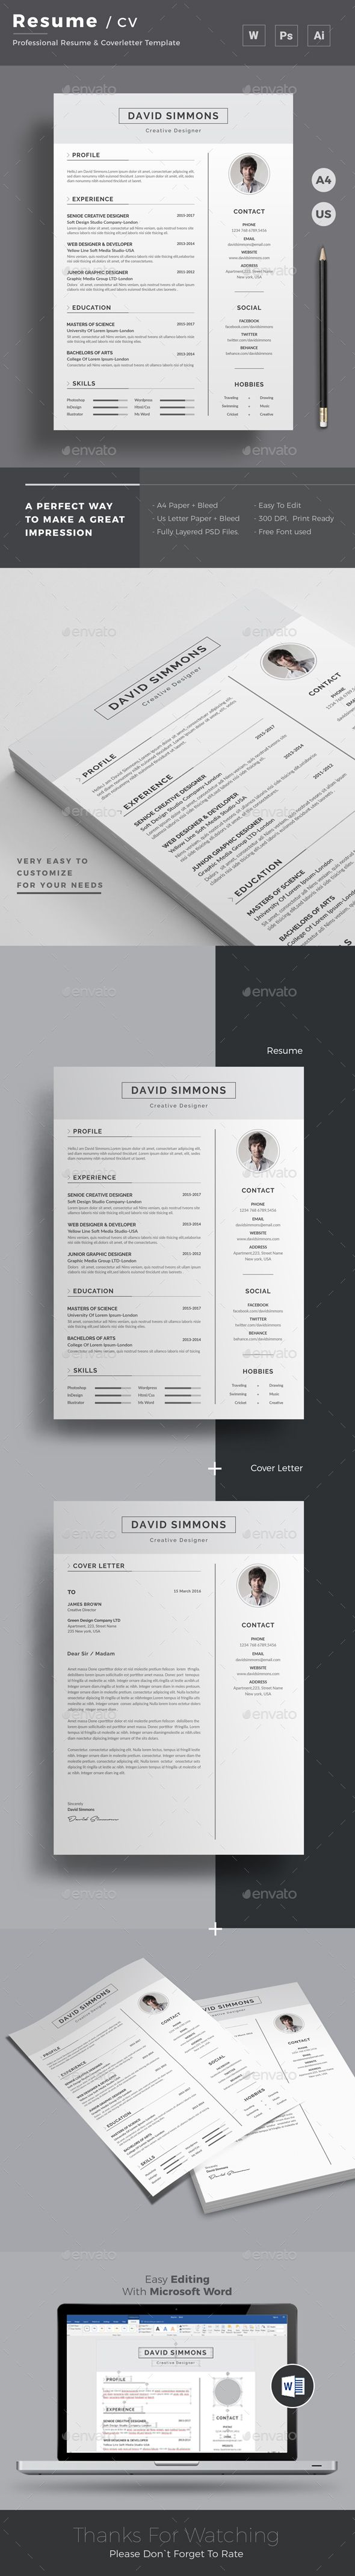 Cute 1.5 Binder Spine Template Huge 10 Minute Resume Builder Round 2 Inch Heart Template 2 Page Resume Design Youthful 2014 Calendar Template Monthly Purple2015 Calendar Word Template 25  Best Ideas About Resume Words On Pinterest | Resume, Resume ..